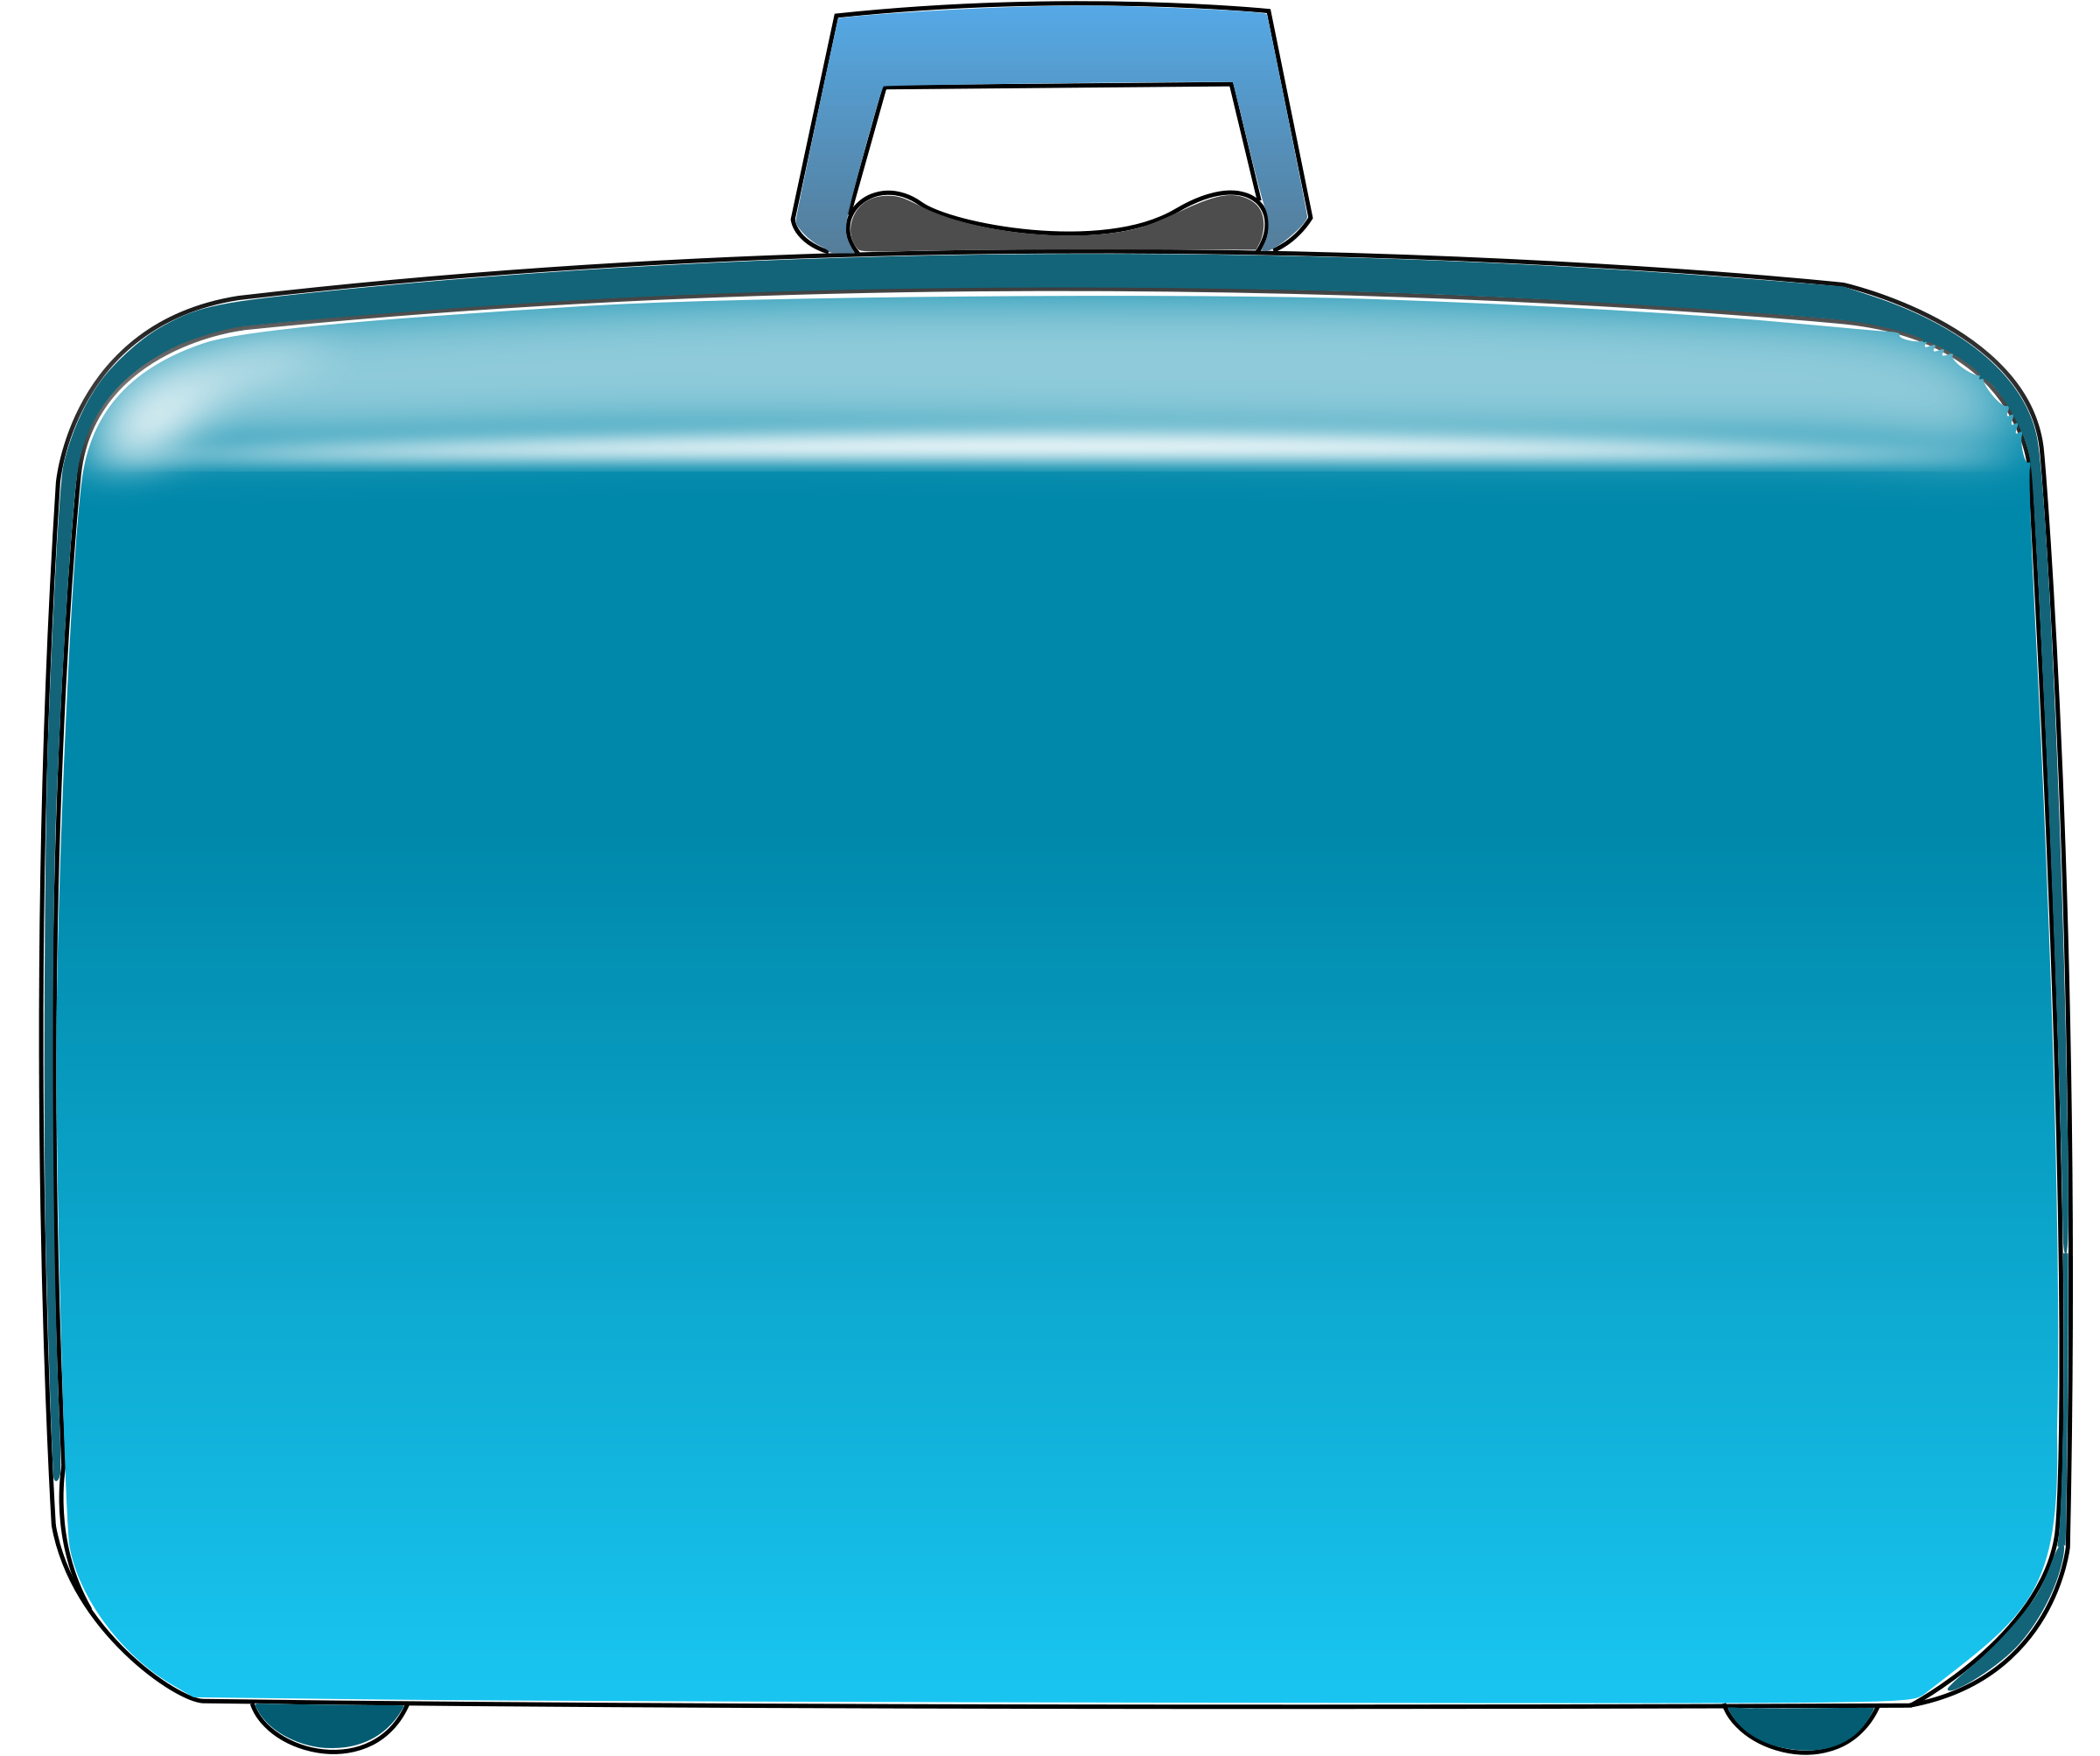 Suitcase clipart #11, Download drawings